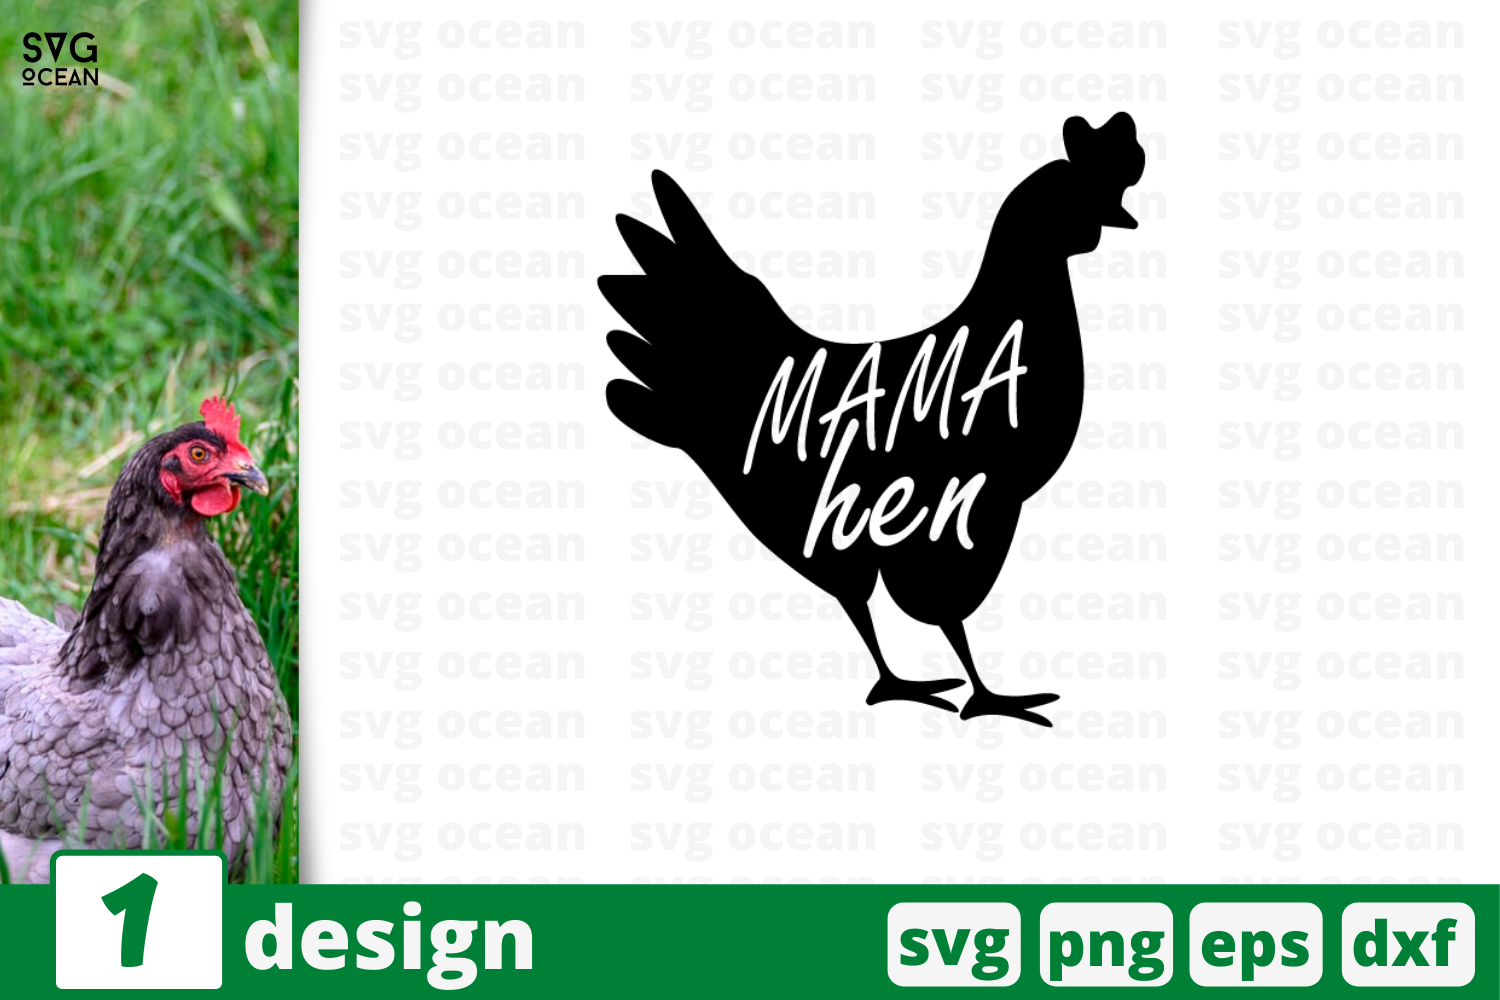 Download Free Mama Hen Graphic By Svgocean Creative Fabrica for Cricut Explore, Silhouette and other cutting machines.